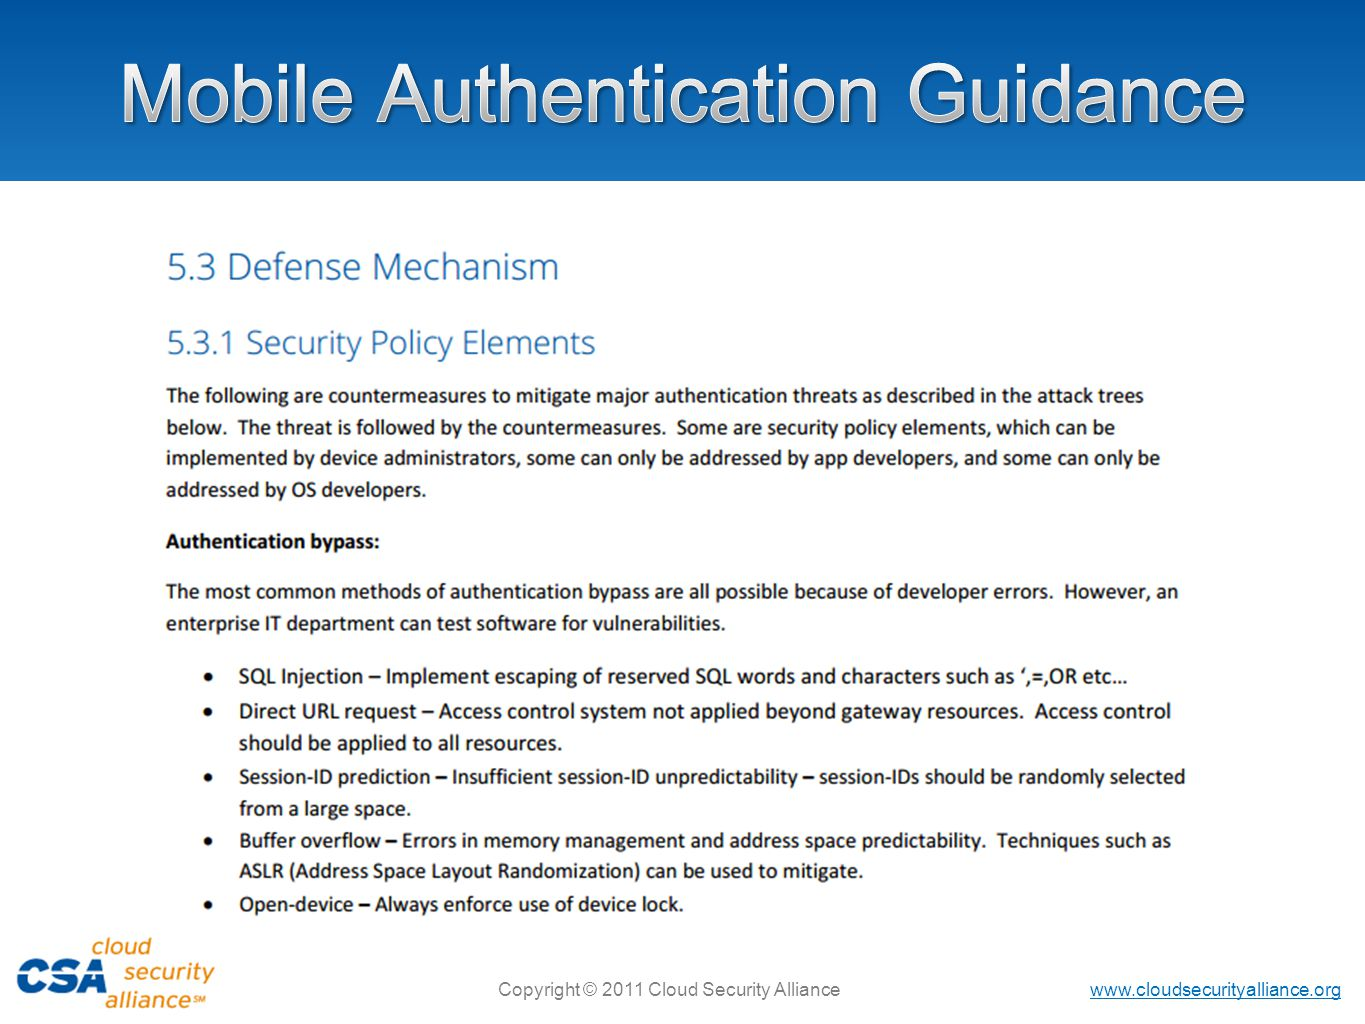 Mobile Authentication Guidance